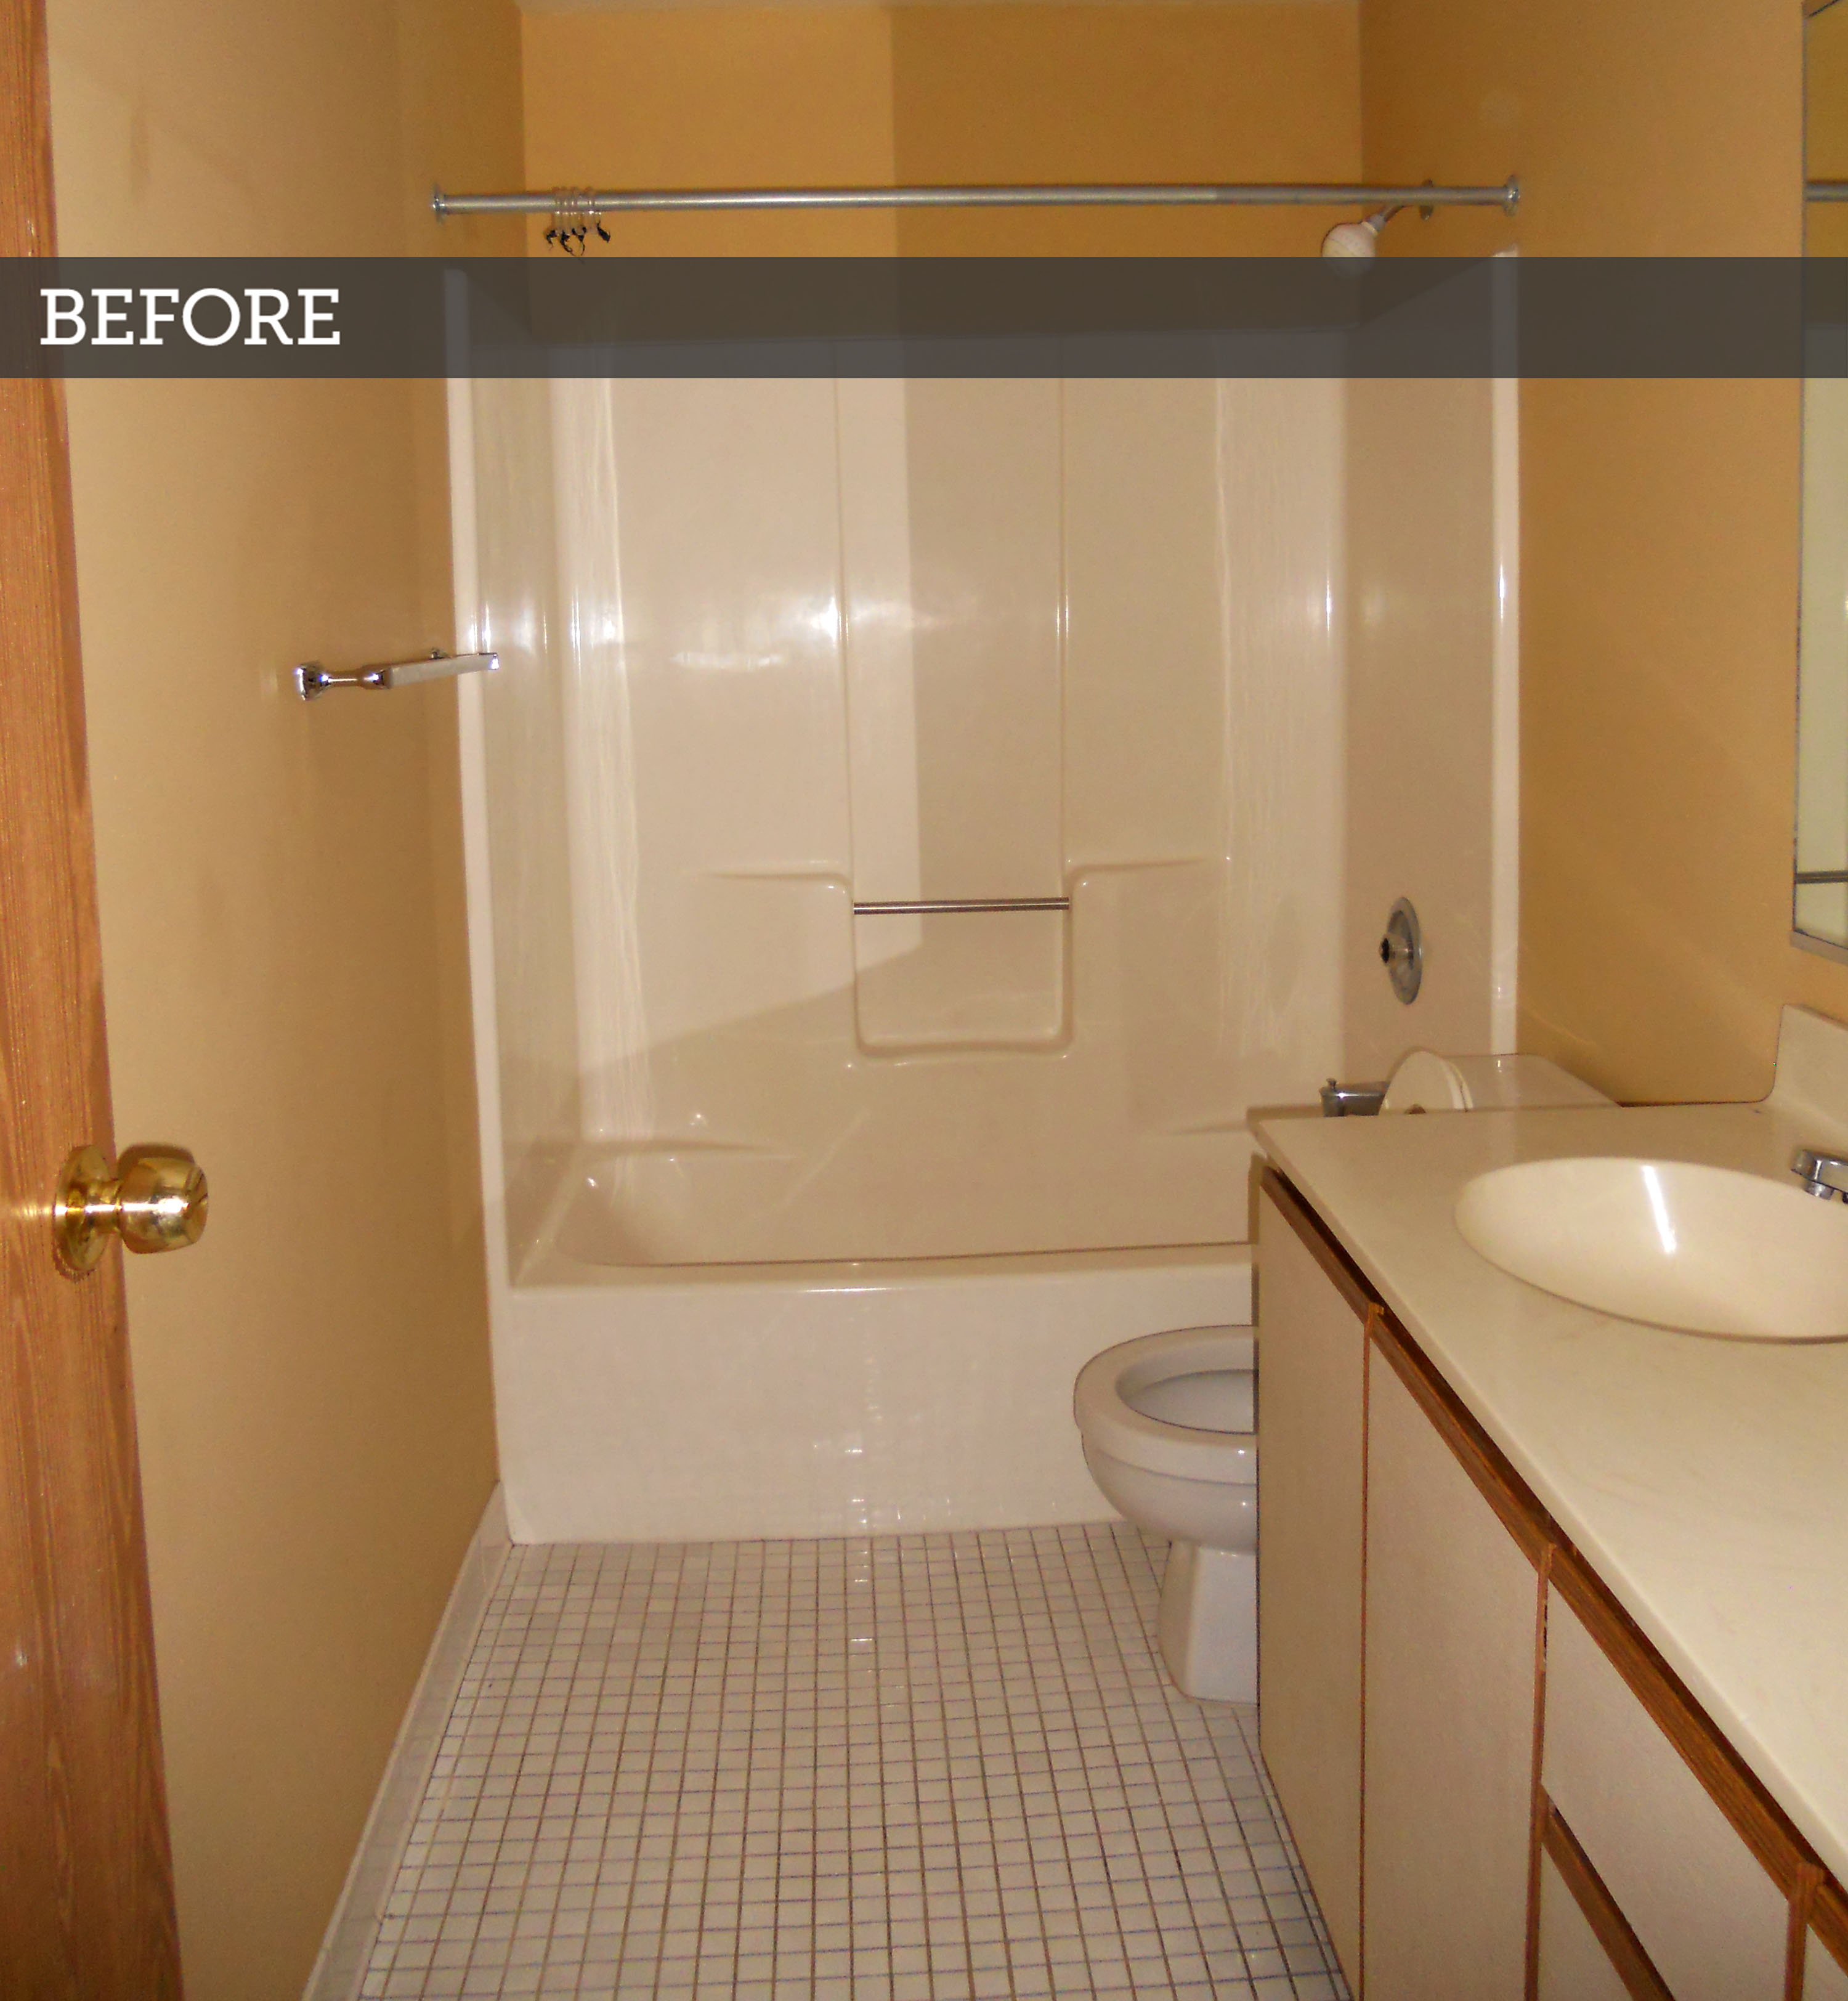 brothers guest cincinnati with remodel bubbles tub biehl fuson bathroom pano jetted and mosaic